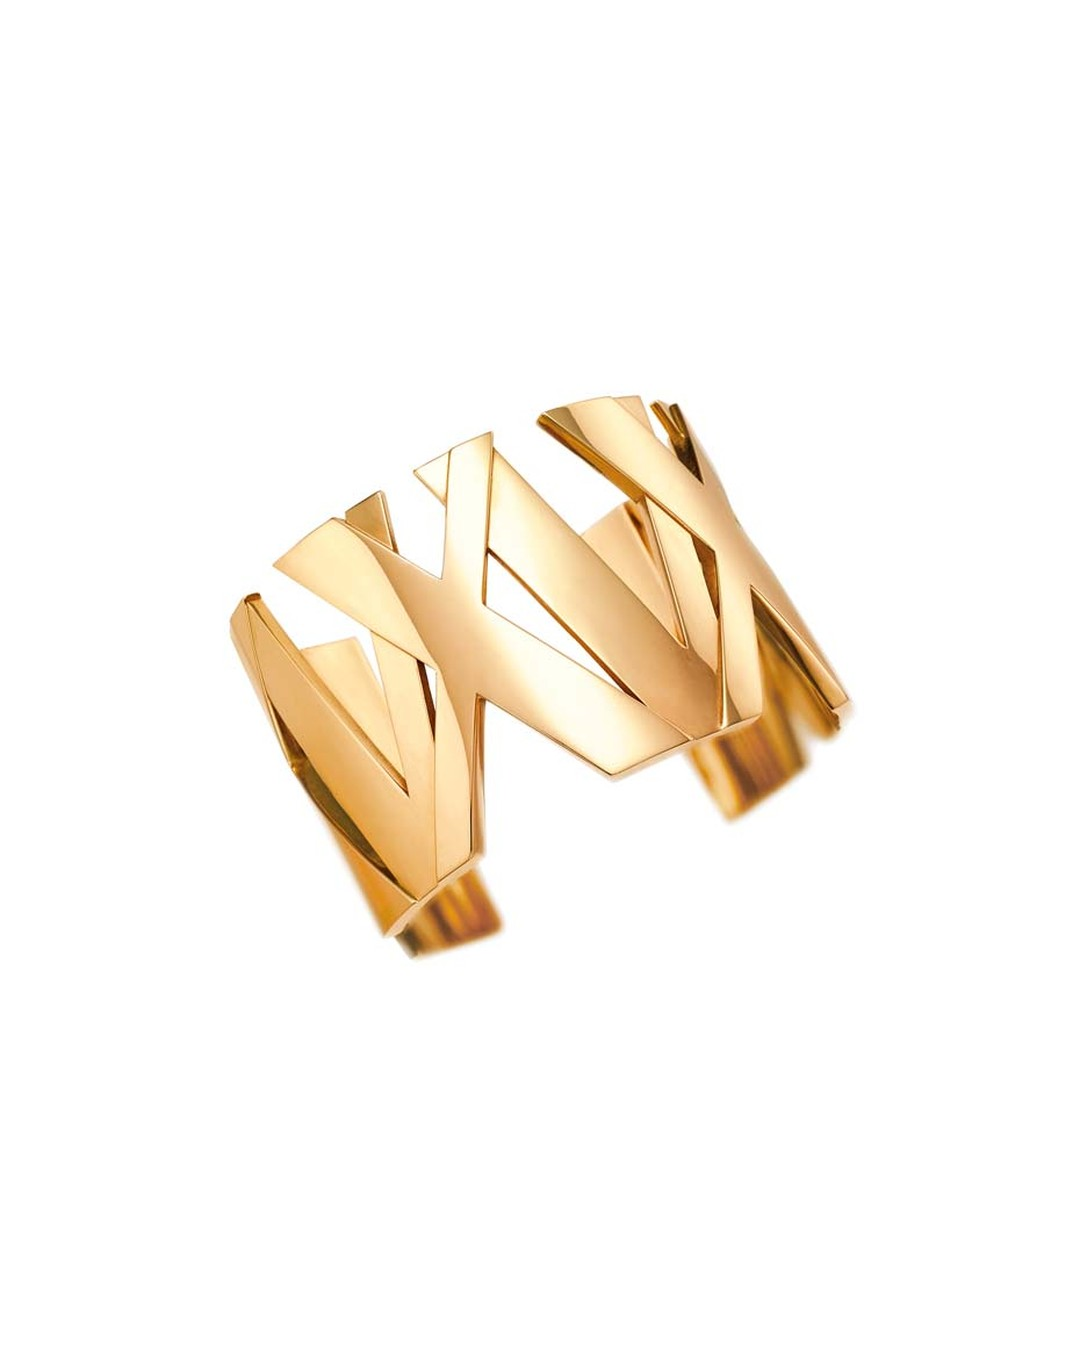 Tiffany & Co. Atlas II collection yellow gold wide bangle featuring a weave of roman numerals.